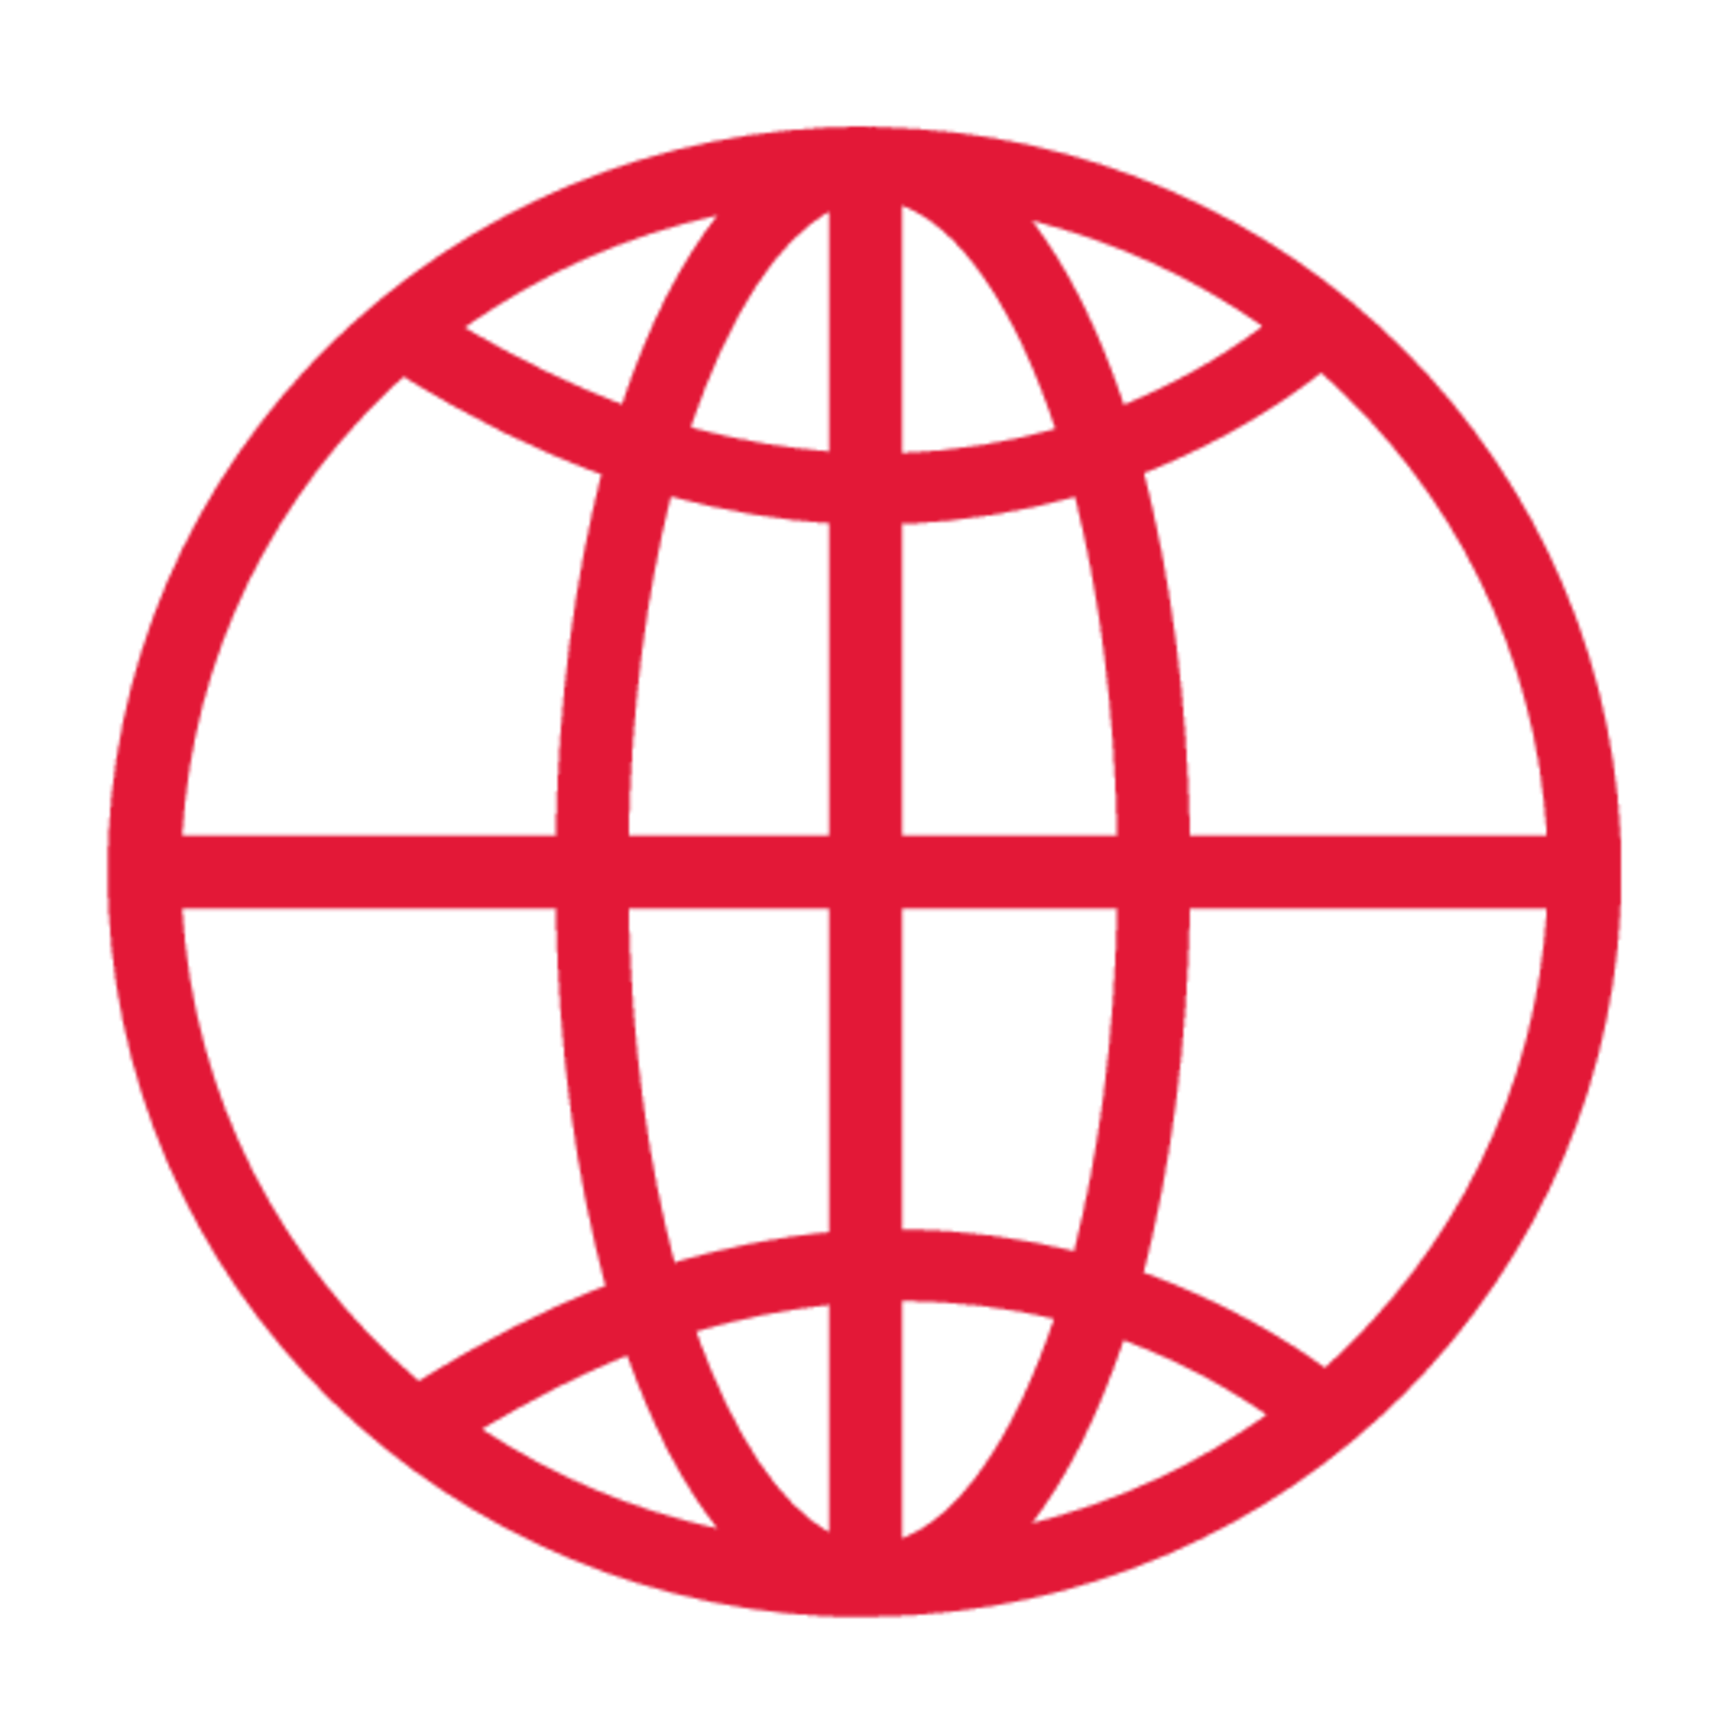 gridline version of the globe.